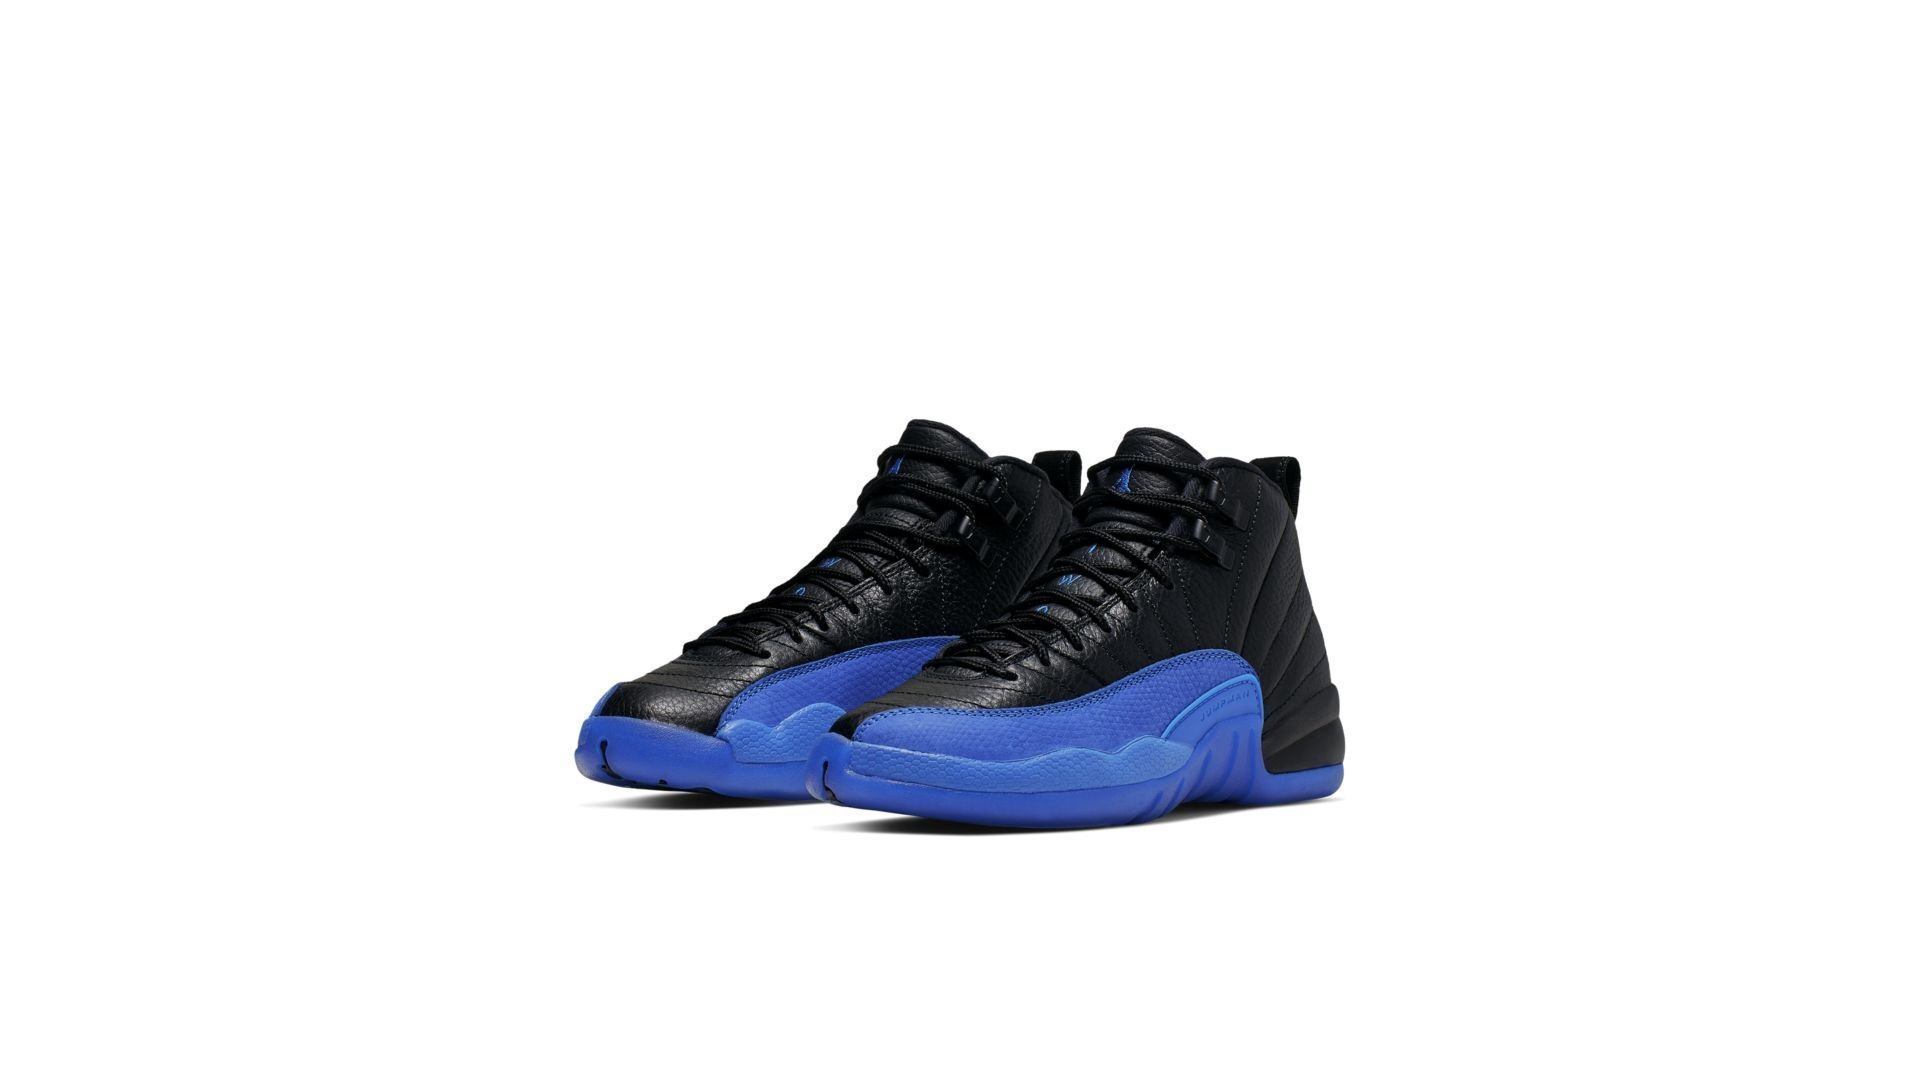 Jordan 12 Retro Black Game Royal (GS) (153265-014)